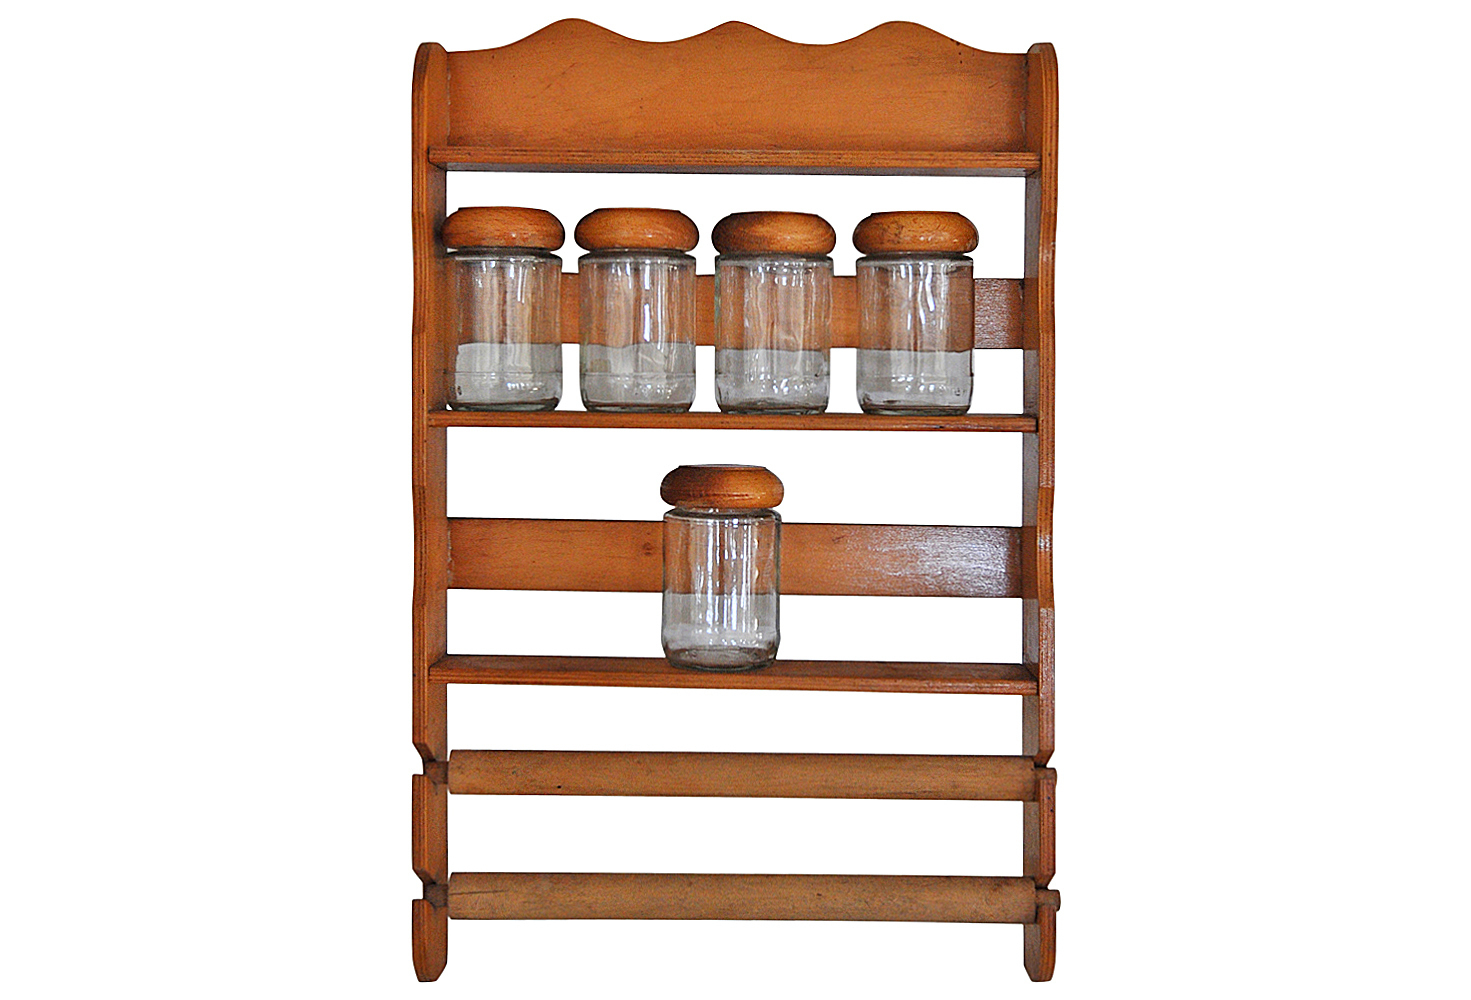 Vintage Wooden Spice Rack With Glass Bottles